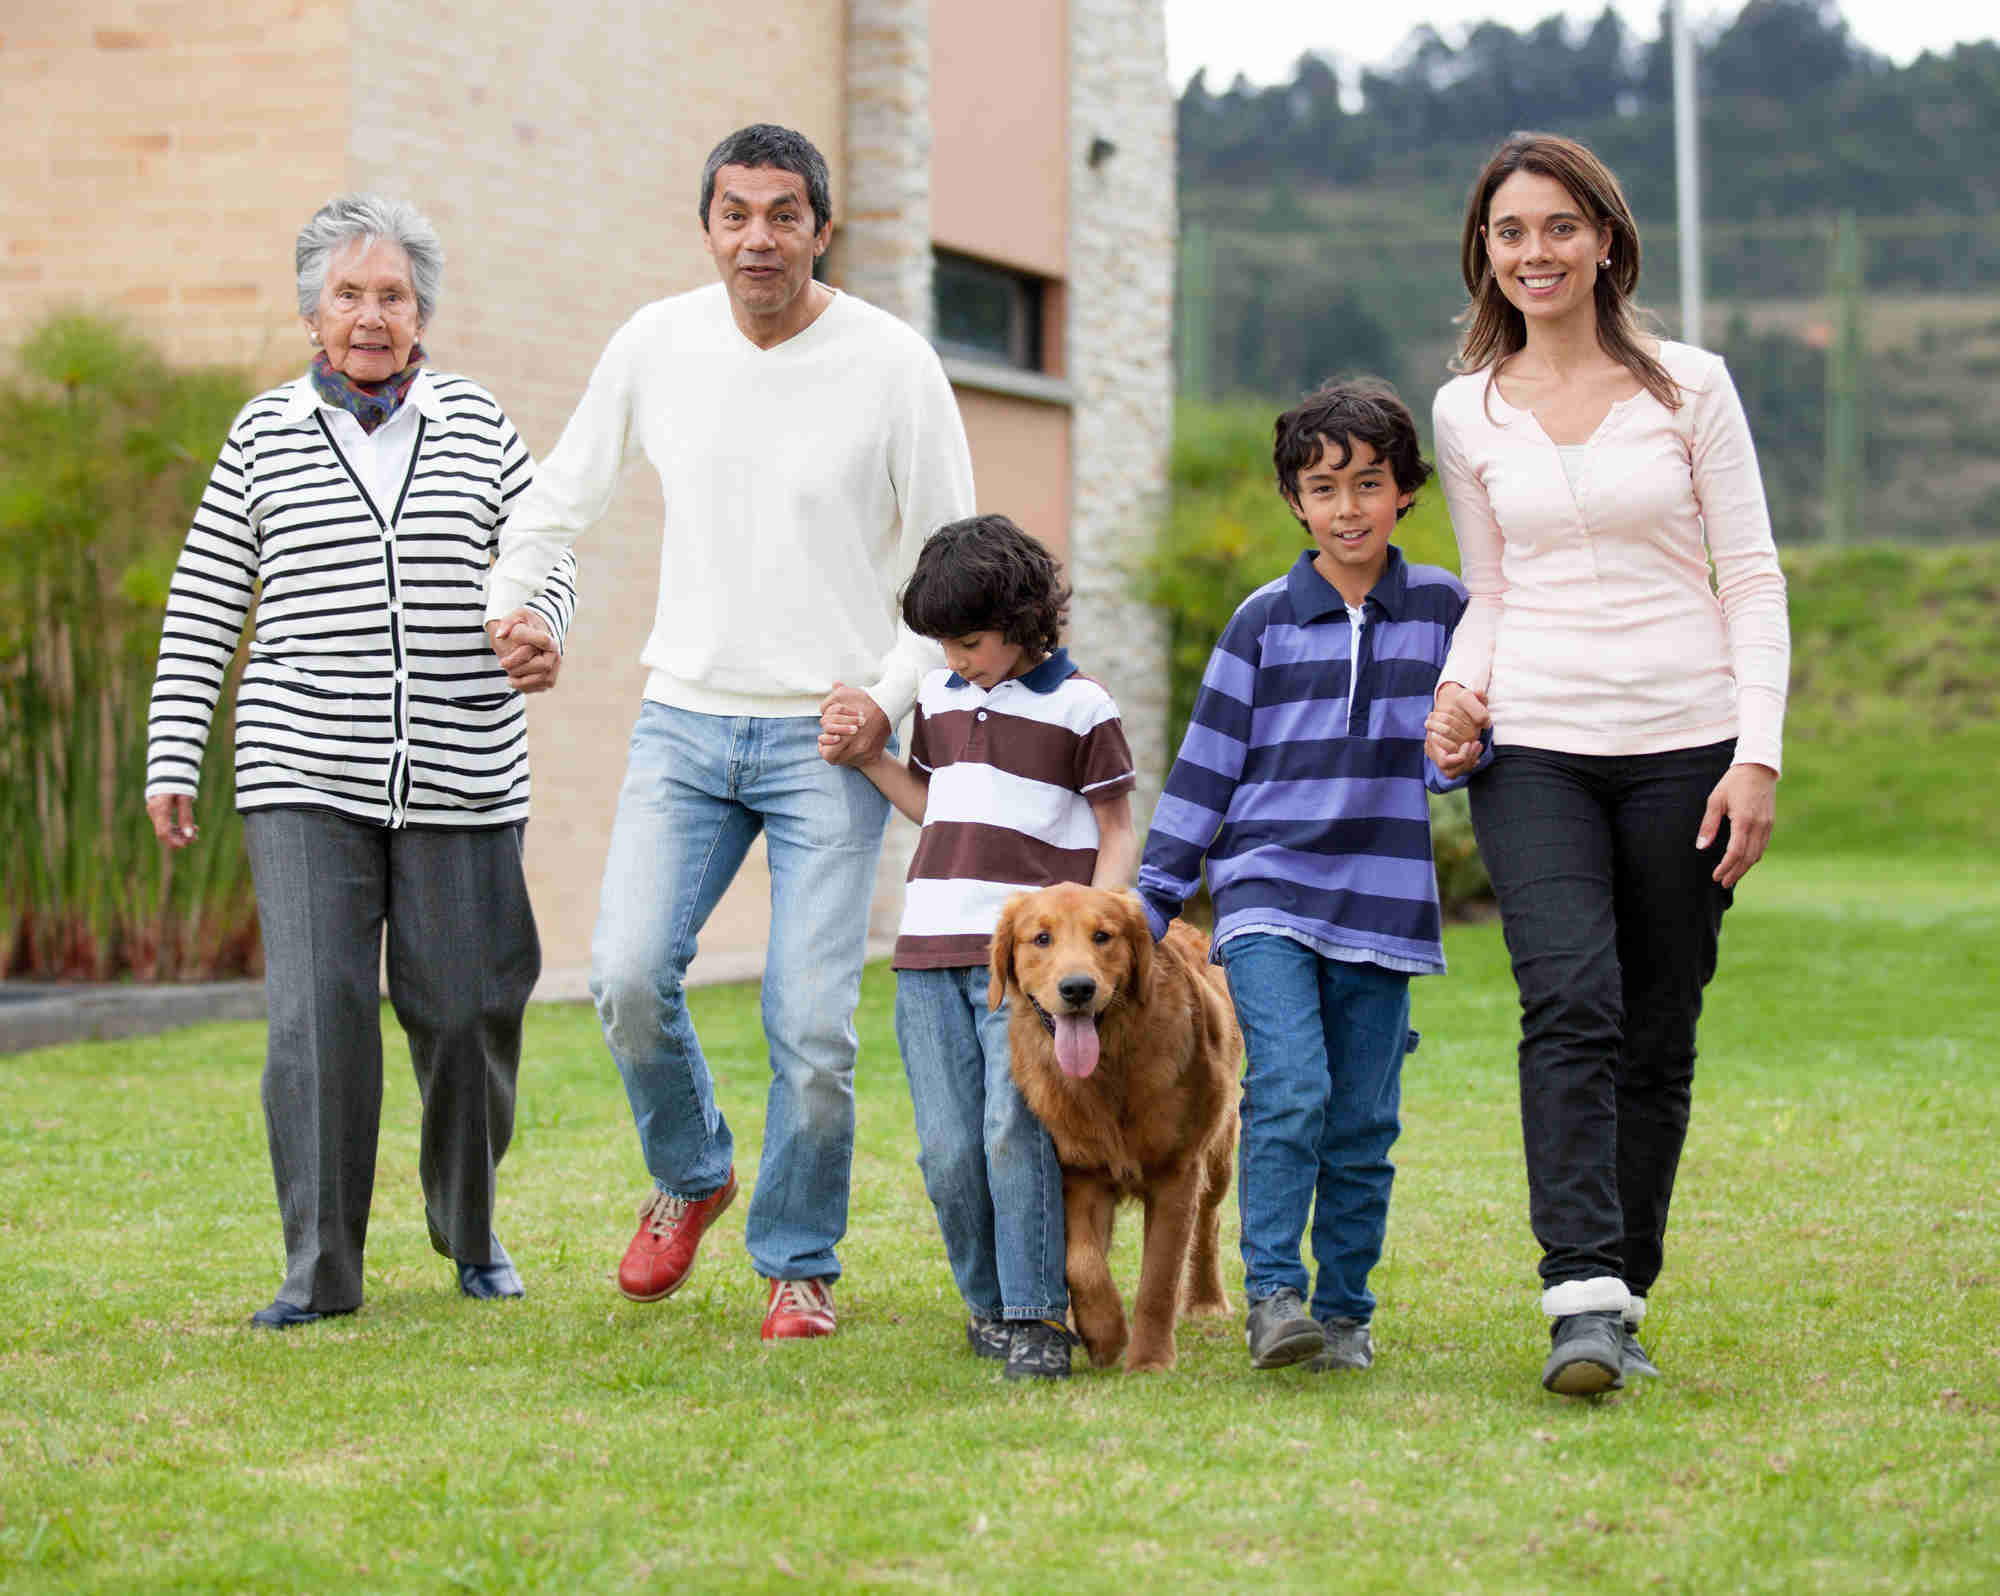 Beautiful family walking outdoors with a dog and smiling